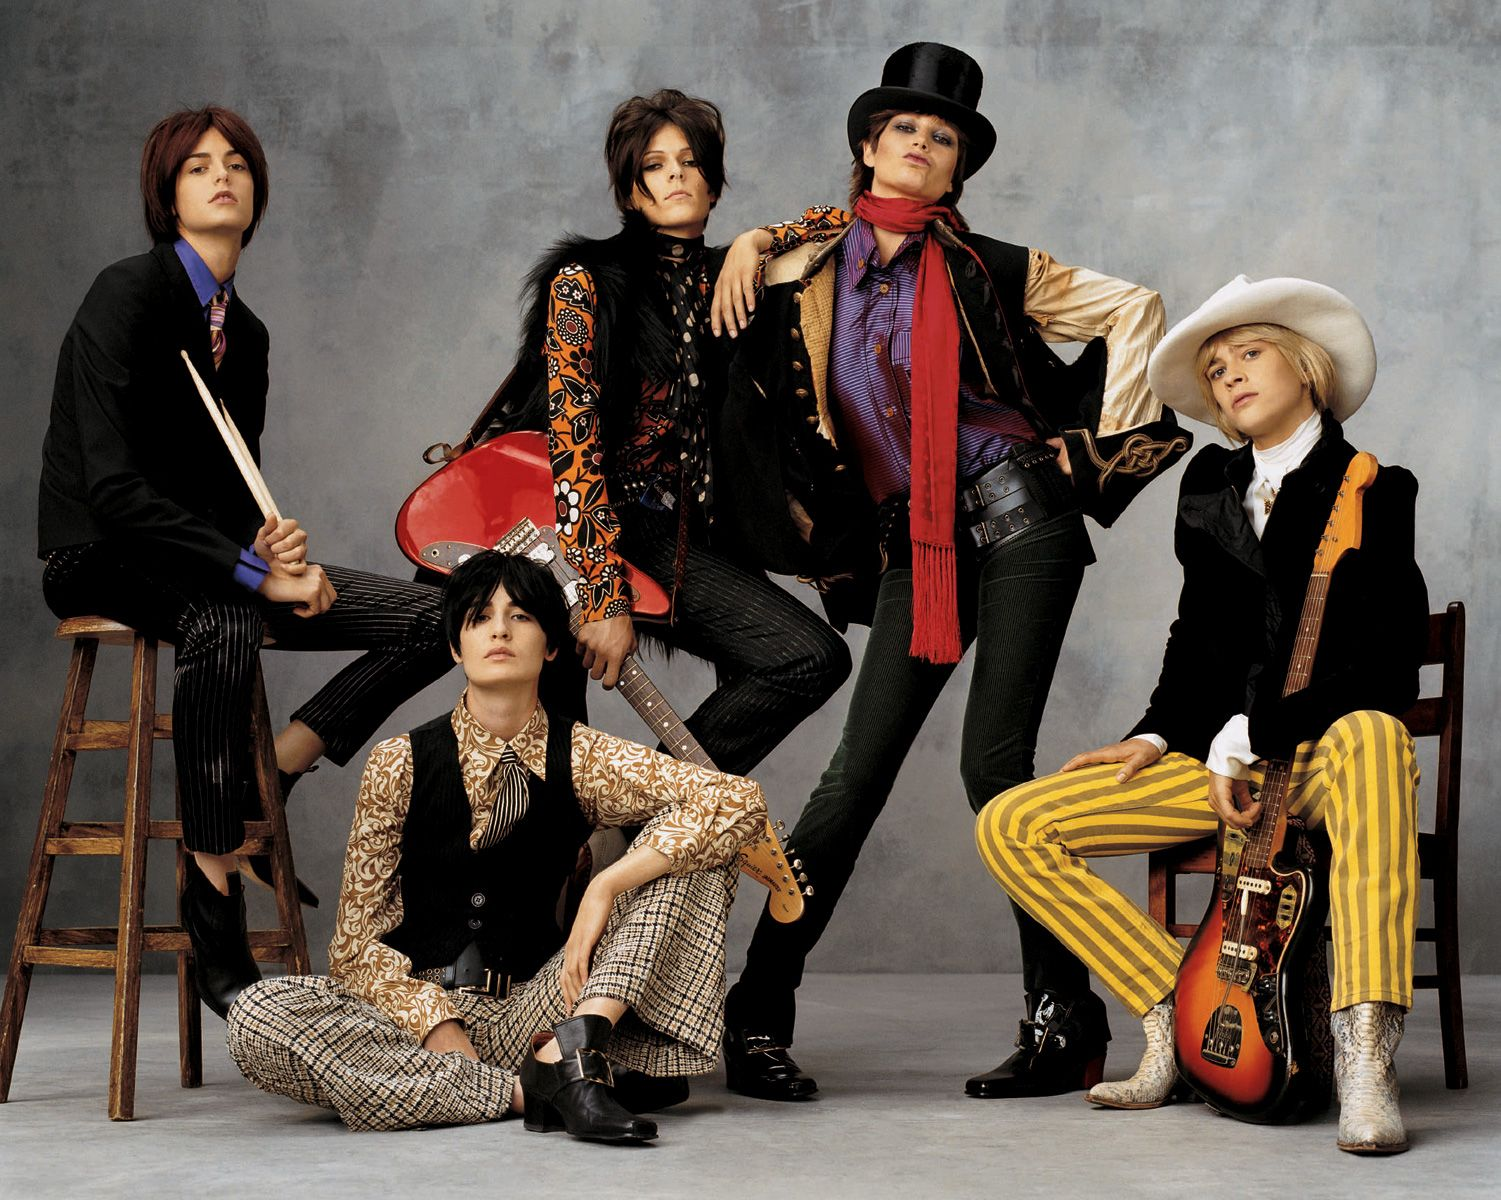 Jacquetta Wheeler, Erin O'Connor, Eleonora Bose, Bridget Hall, and An Oost rocked out as the Rolling Stones.